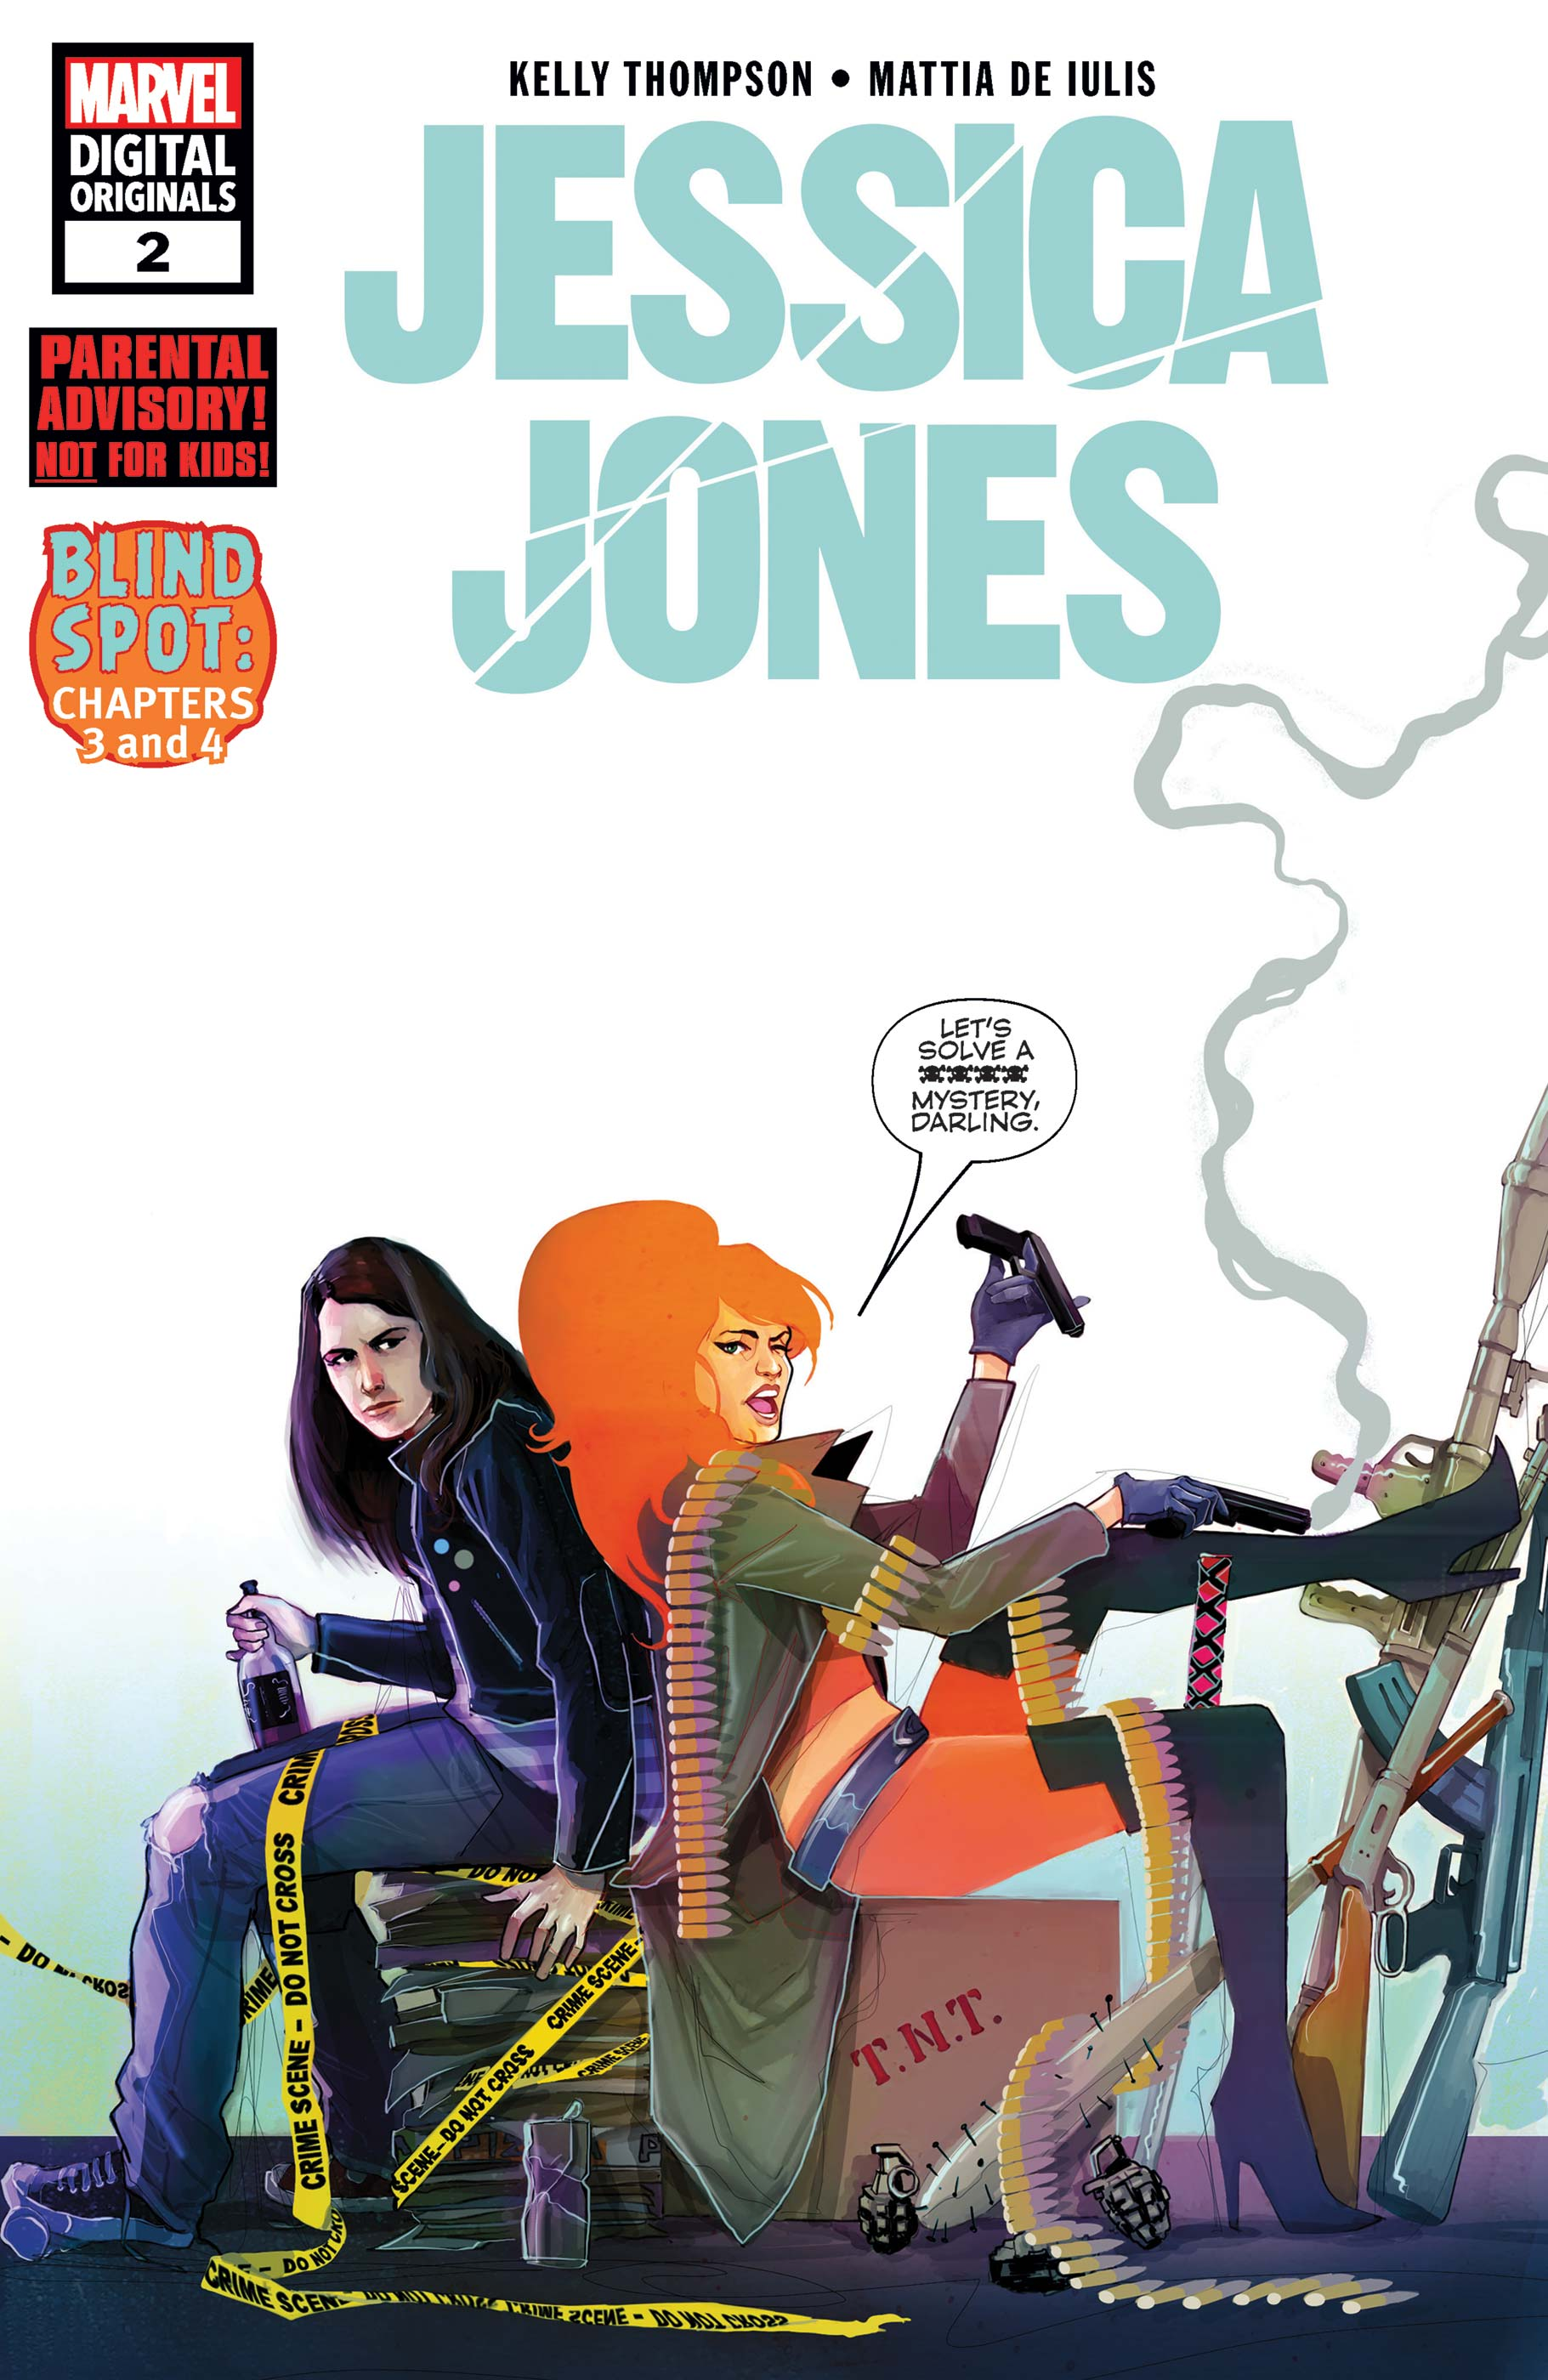 Jessica Jones - Marvel Digital Original (2018) #2